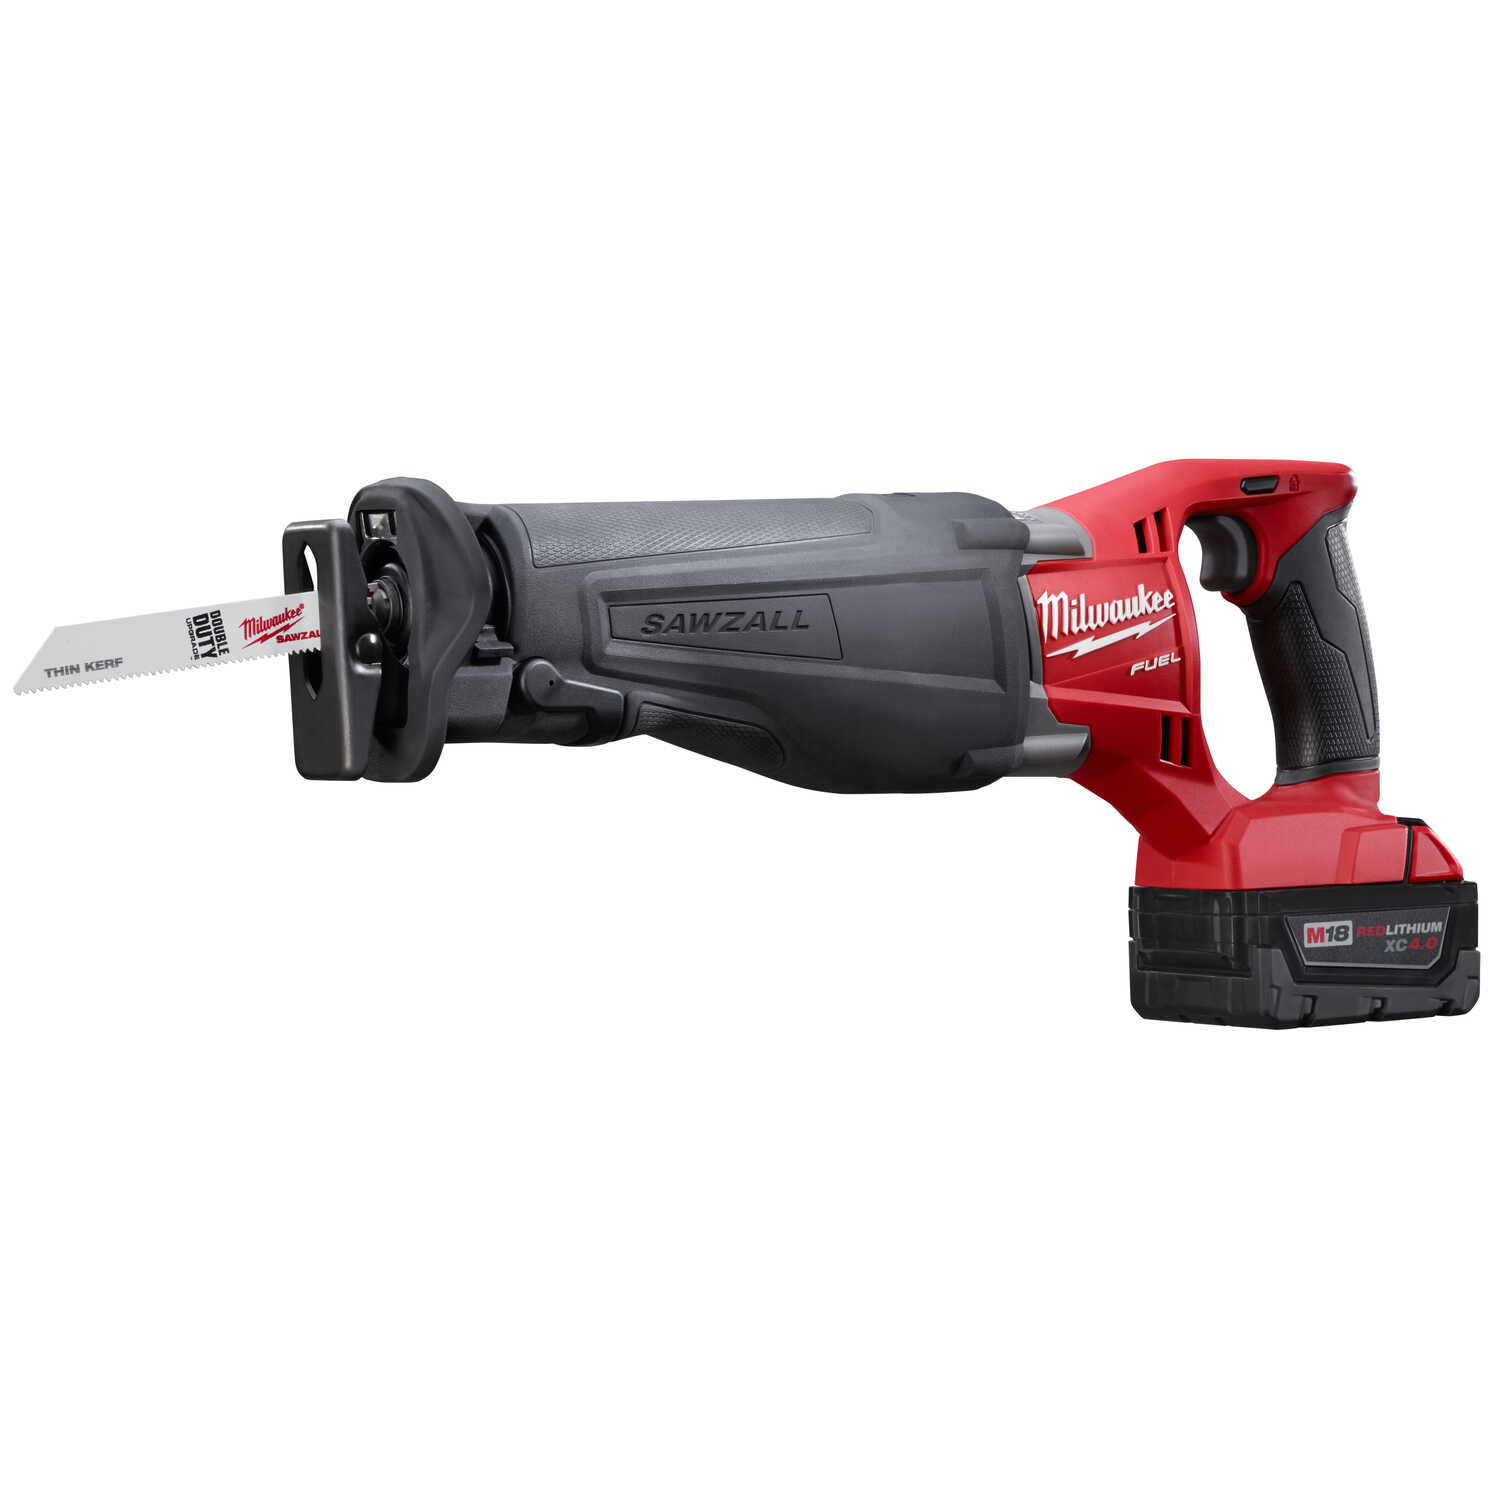 Milwaukee  M18 FUEL SAWZALL  Cordless  Reciprocating Saw  Kit  18 volt